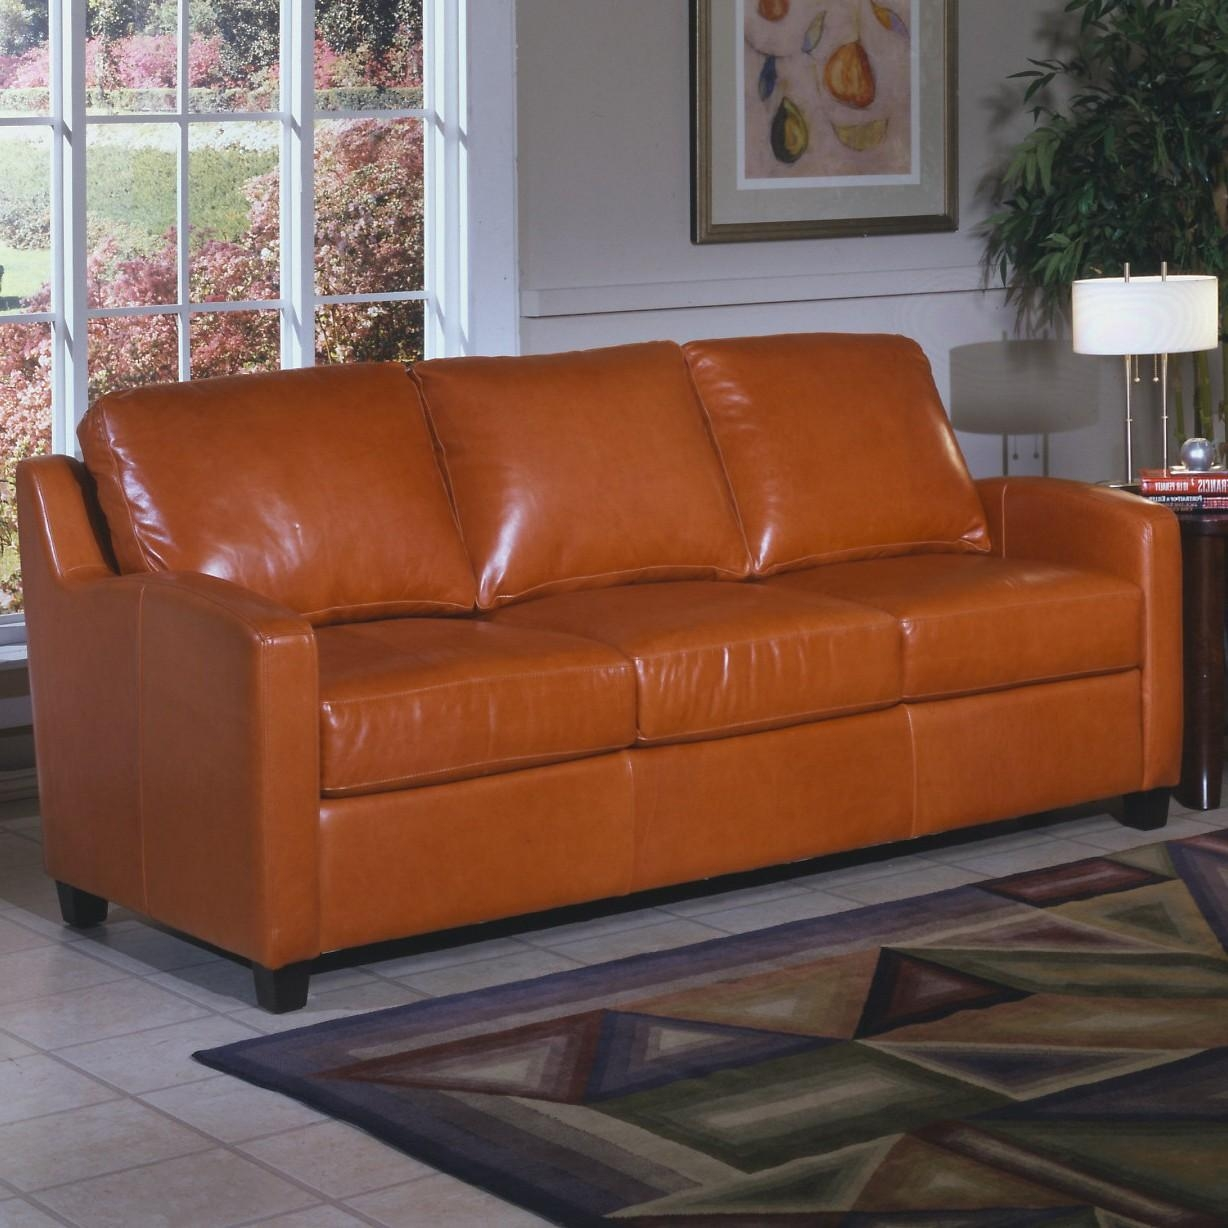 Caramel Leather Sofa | Sofa Gallery | Kengire Regarding Carmel Leather Sofas (Image 5 of 20)